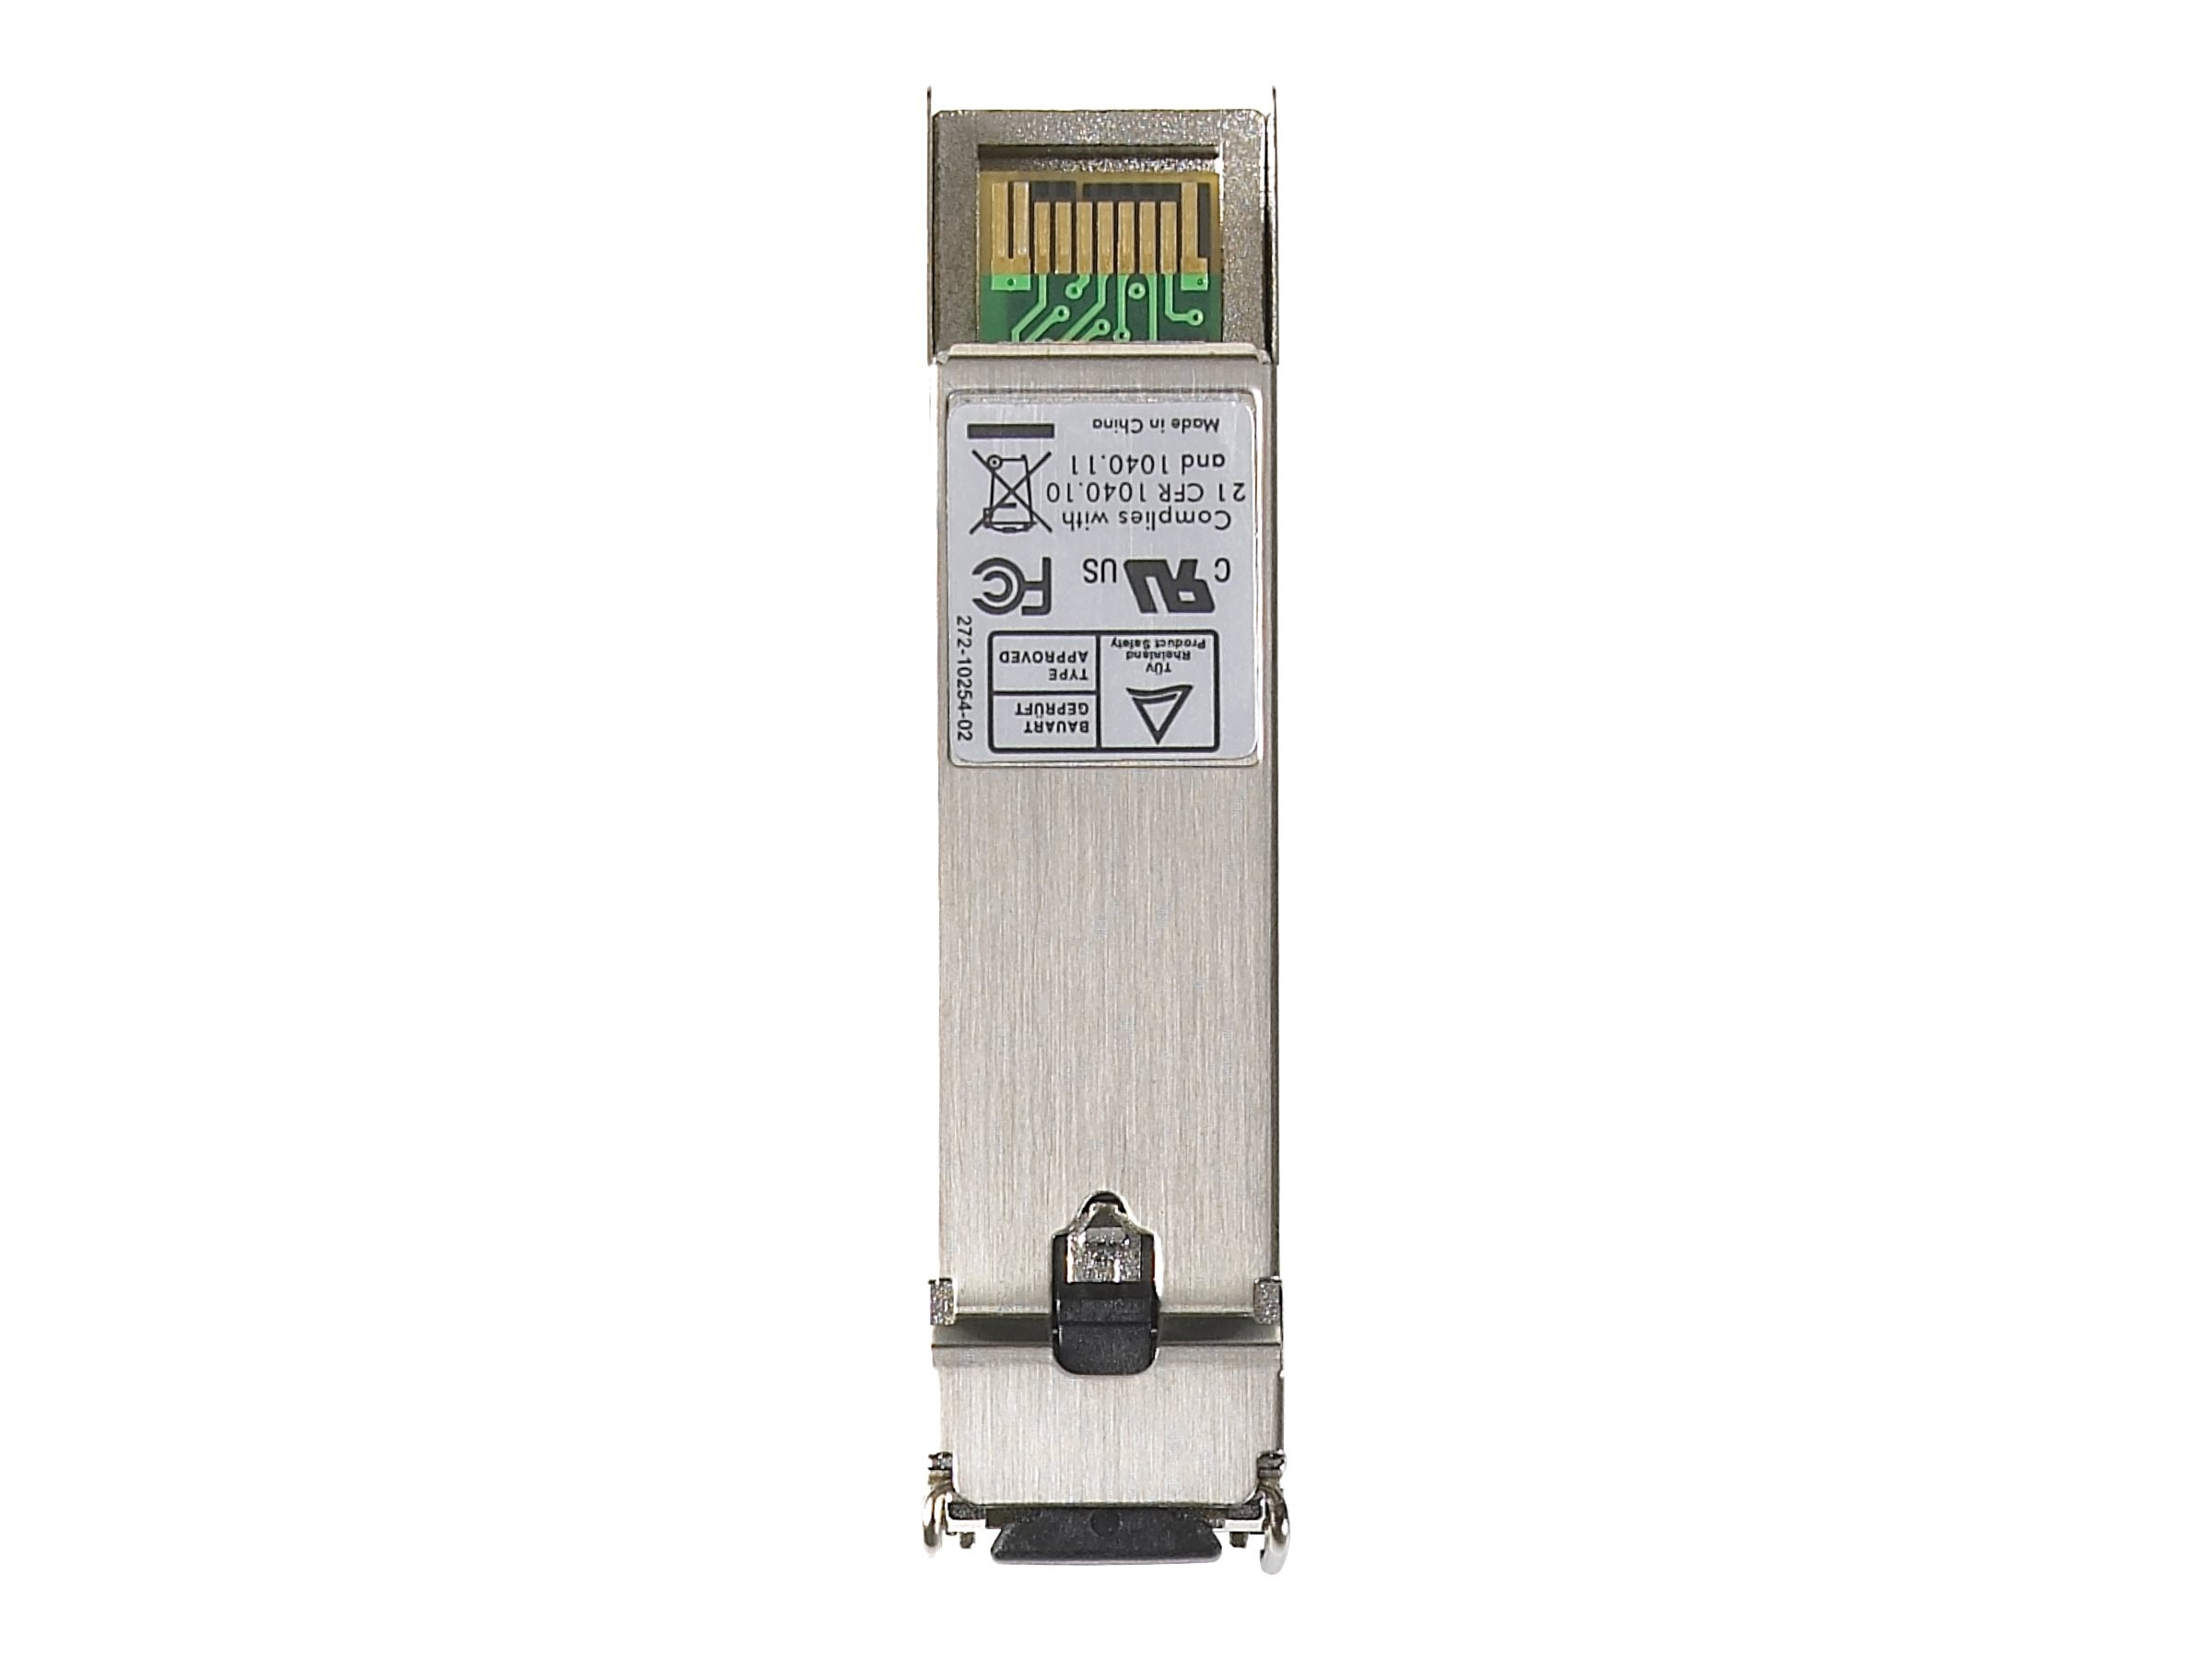 Netgear 1000BaseSX Gigabit Module for GSM7324, AGM731F